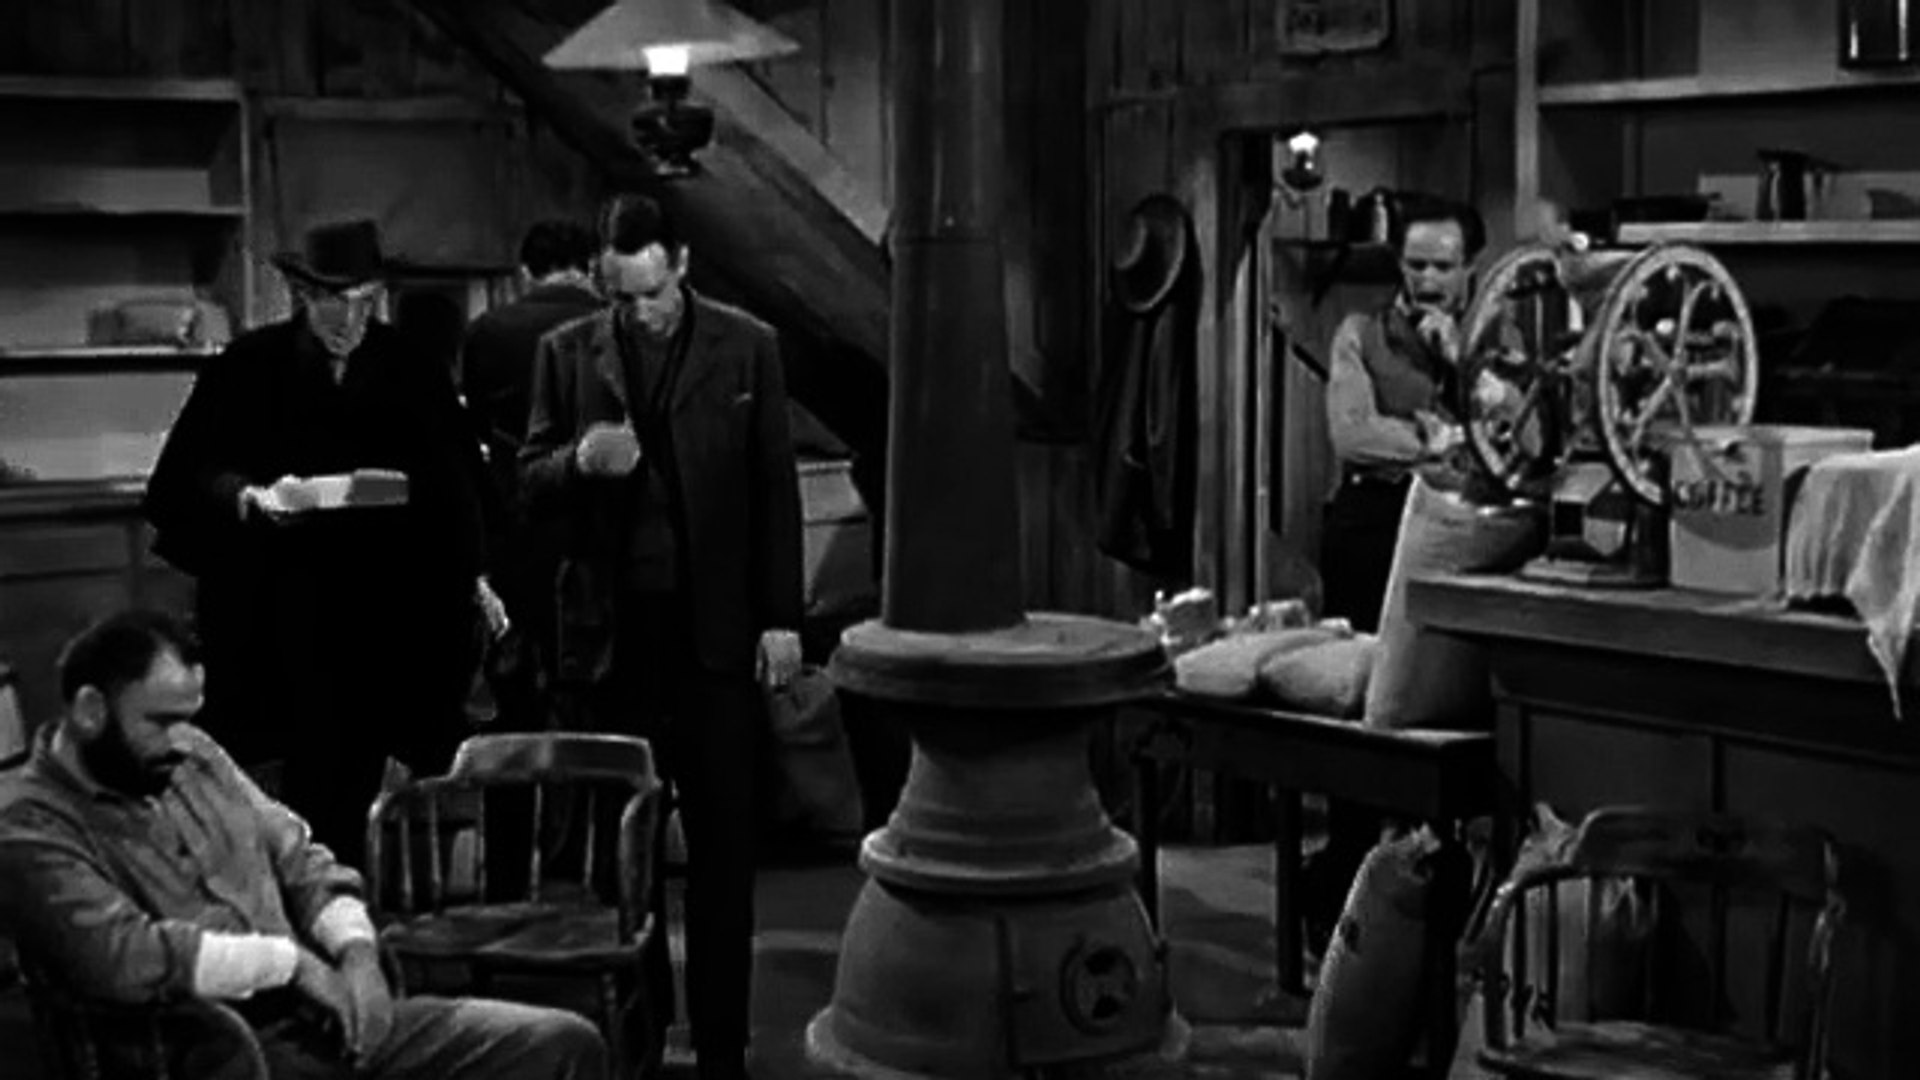 Day of the Outlaw (1959) Western (André De Toth / Robert Ryan, Burl Ives, Tina Louise) part 2/2